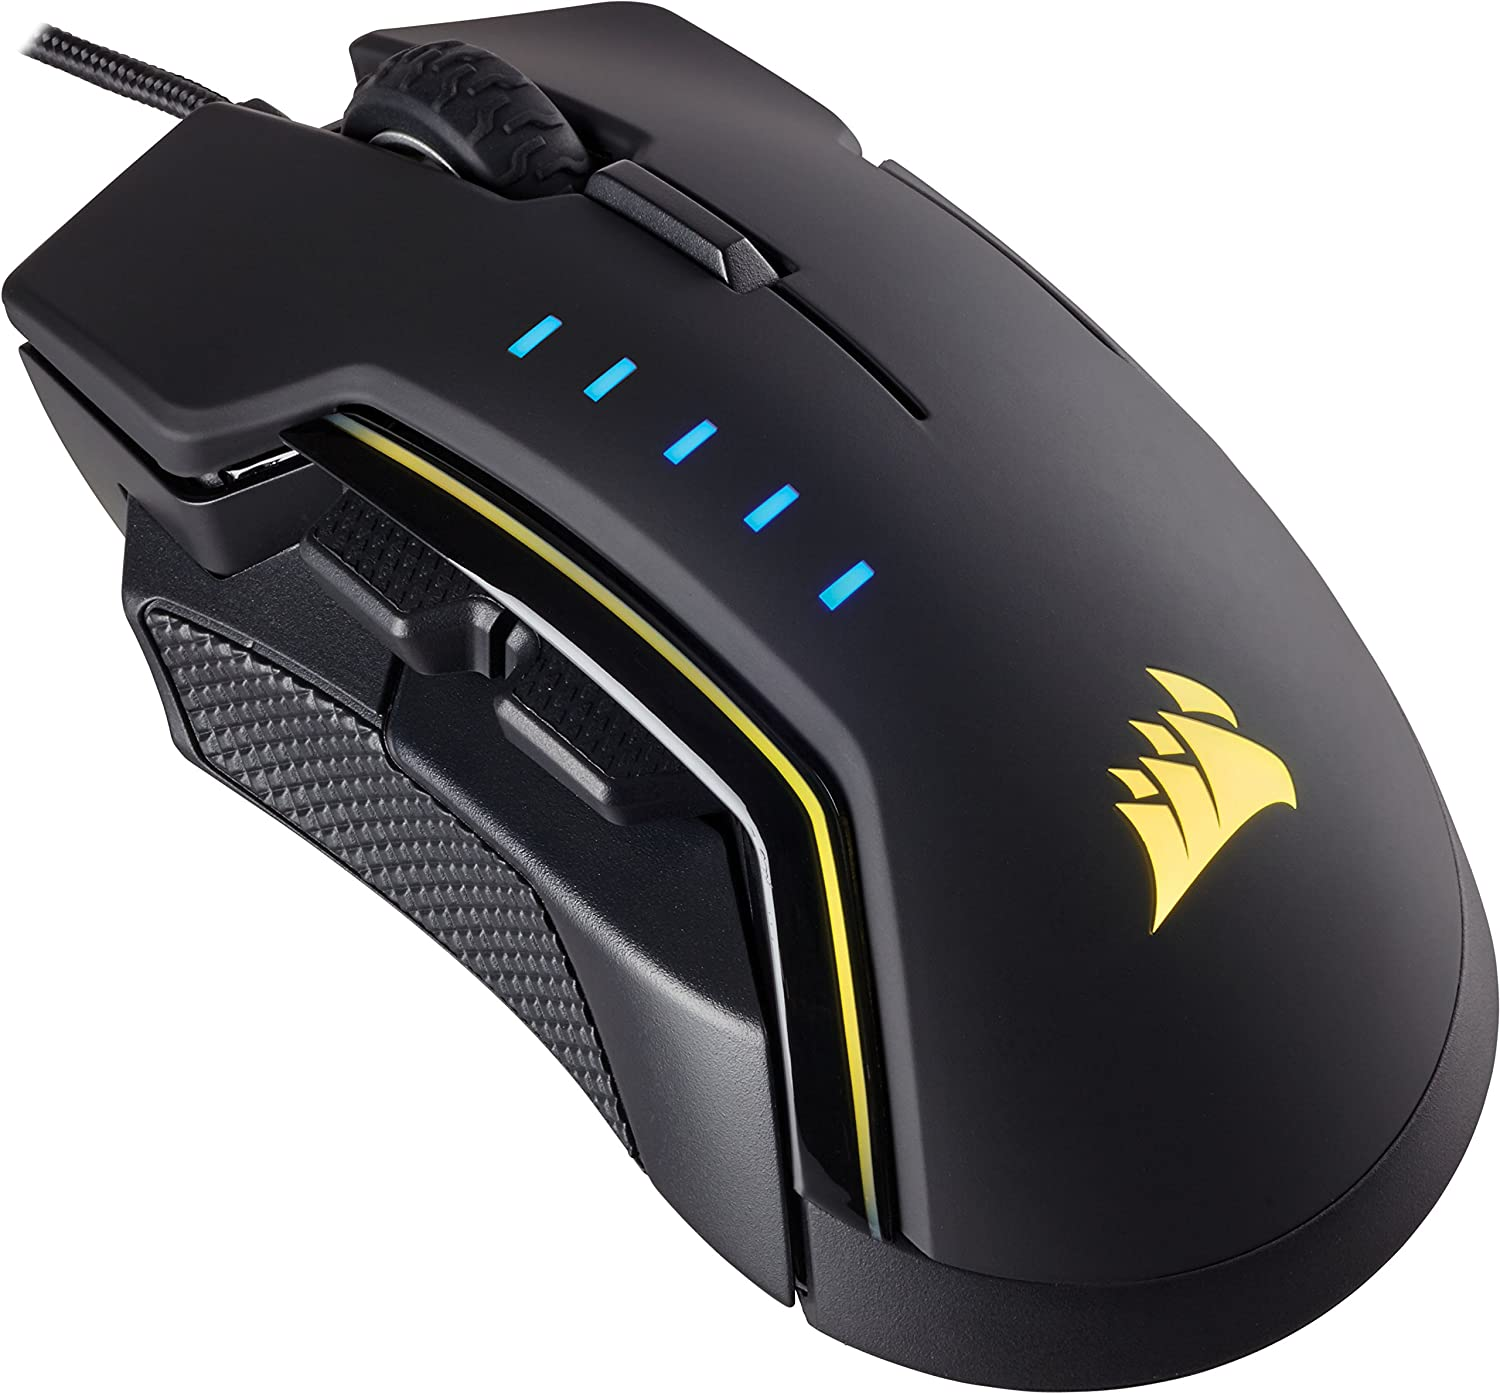 Amazon.com: Corsair CH-9302011-EU USB Optical 16000DPI Right-hand Mouse - Black,Yellow: Electronics